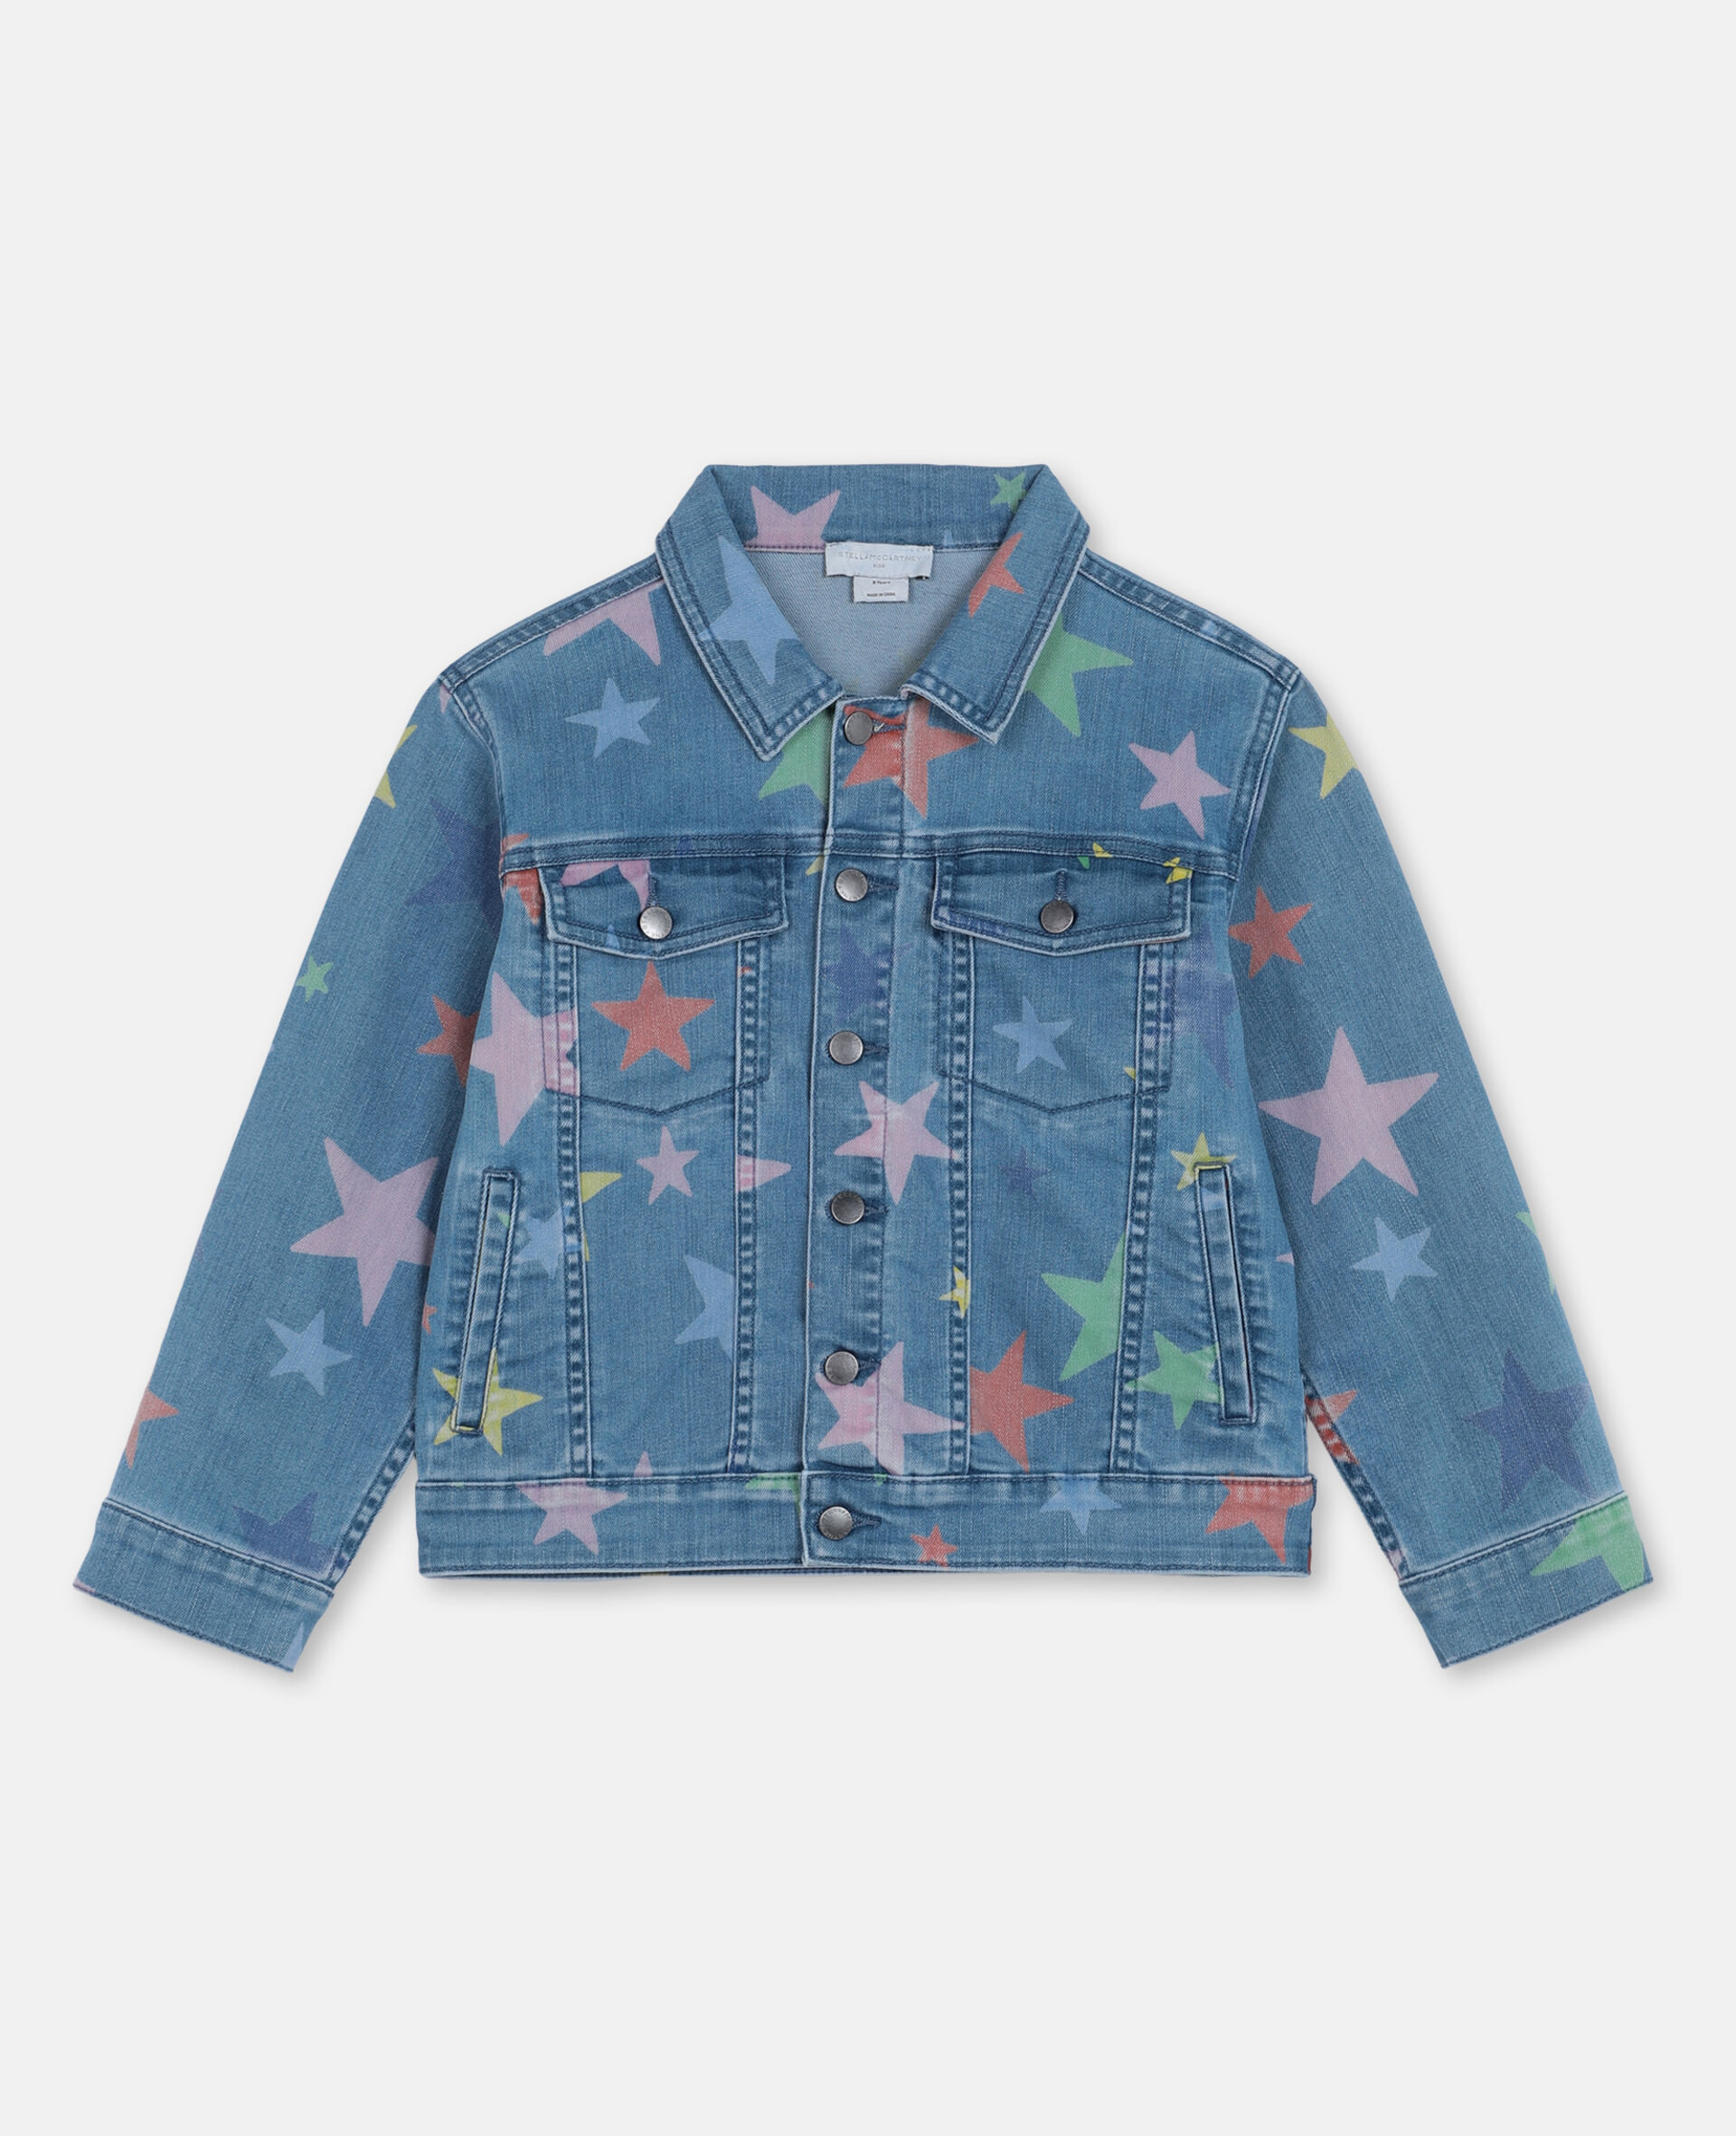 Multicolour Stars Denim Jacket -Multicolour-large image number 0